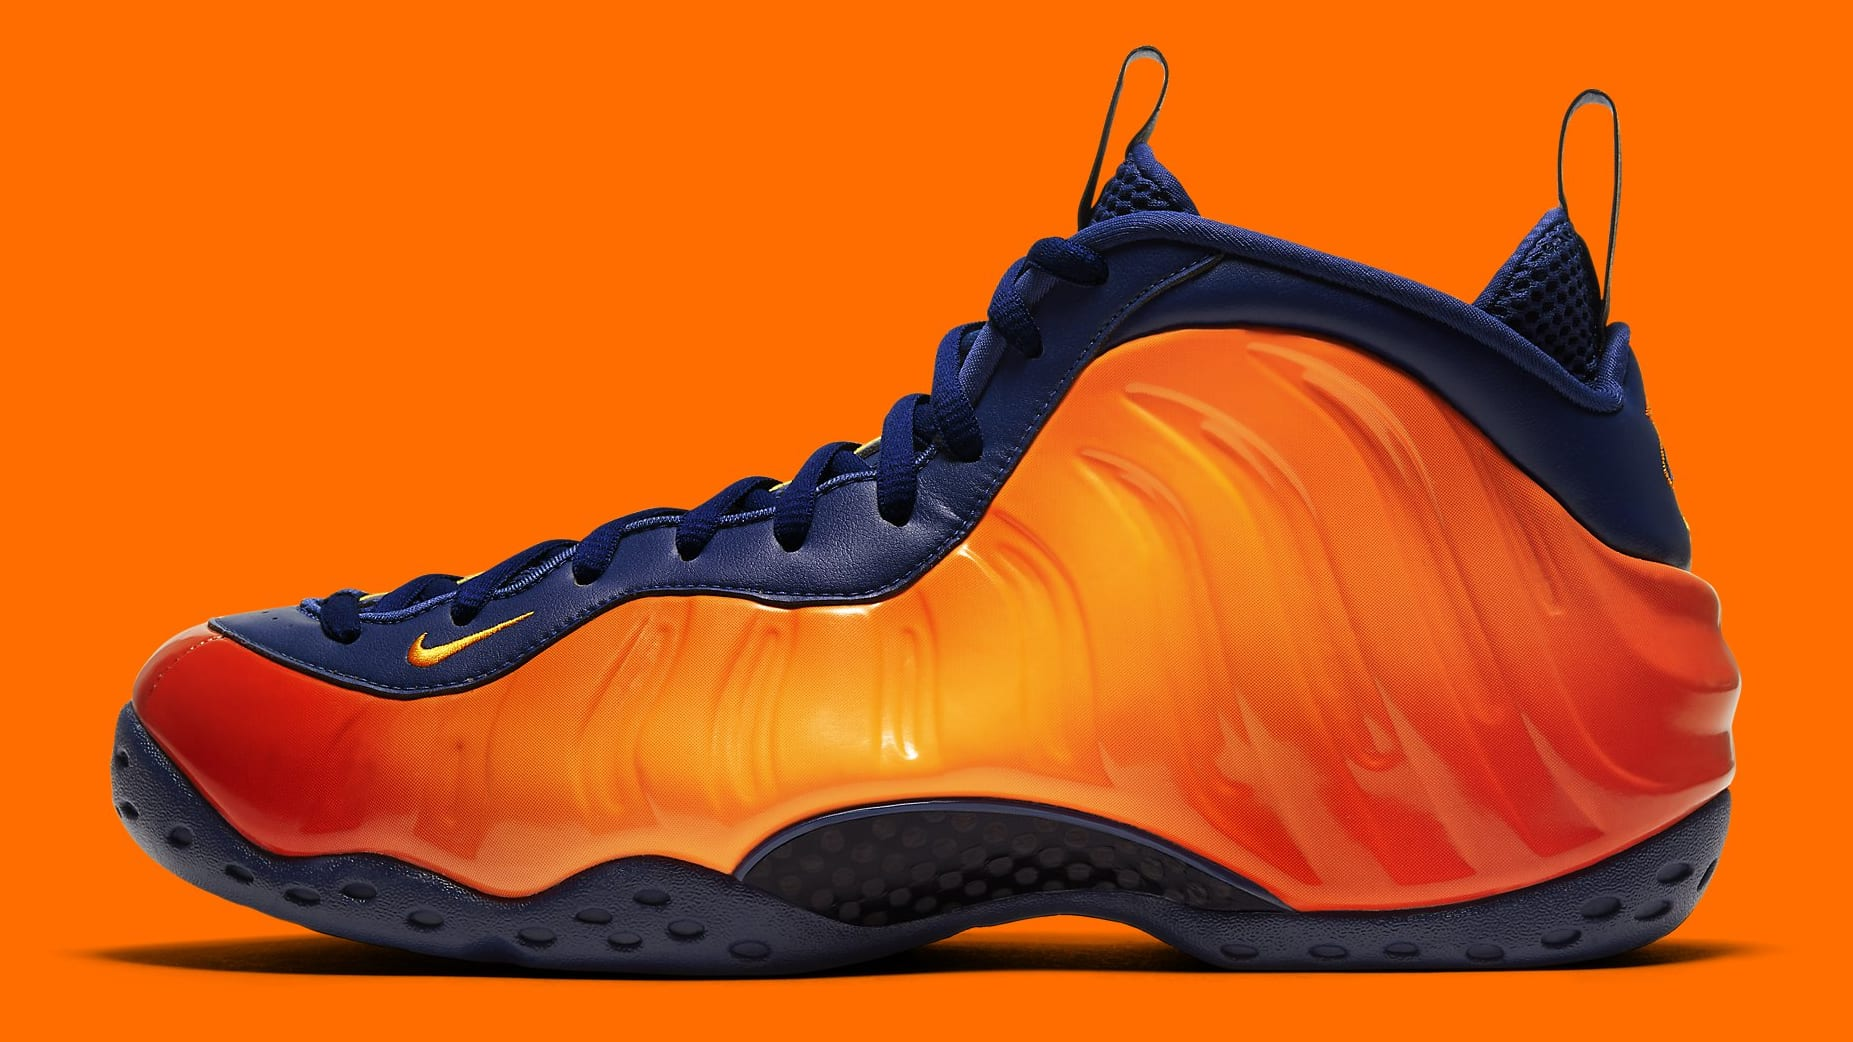 Nike Air Foamposite One XX OG Dark Neon Royal Blue ...